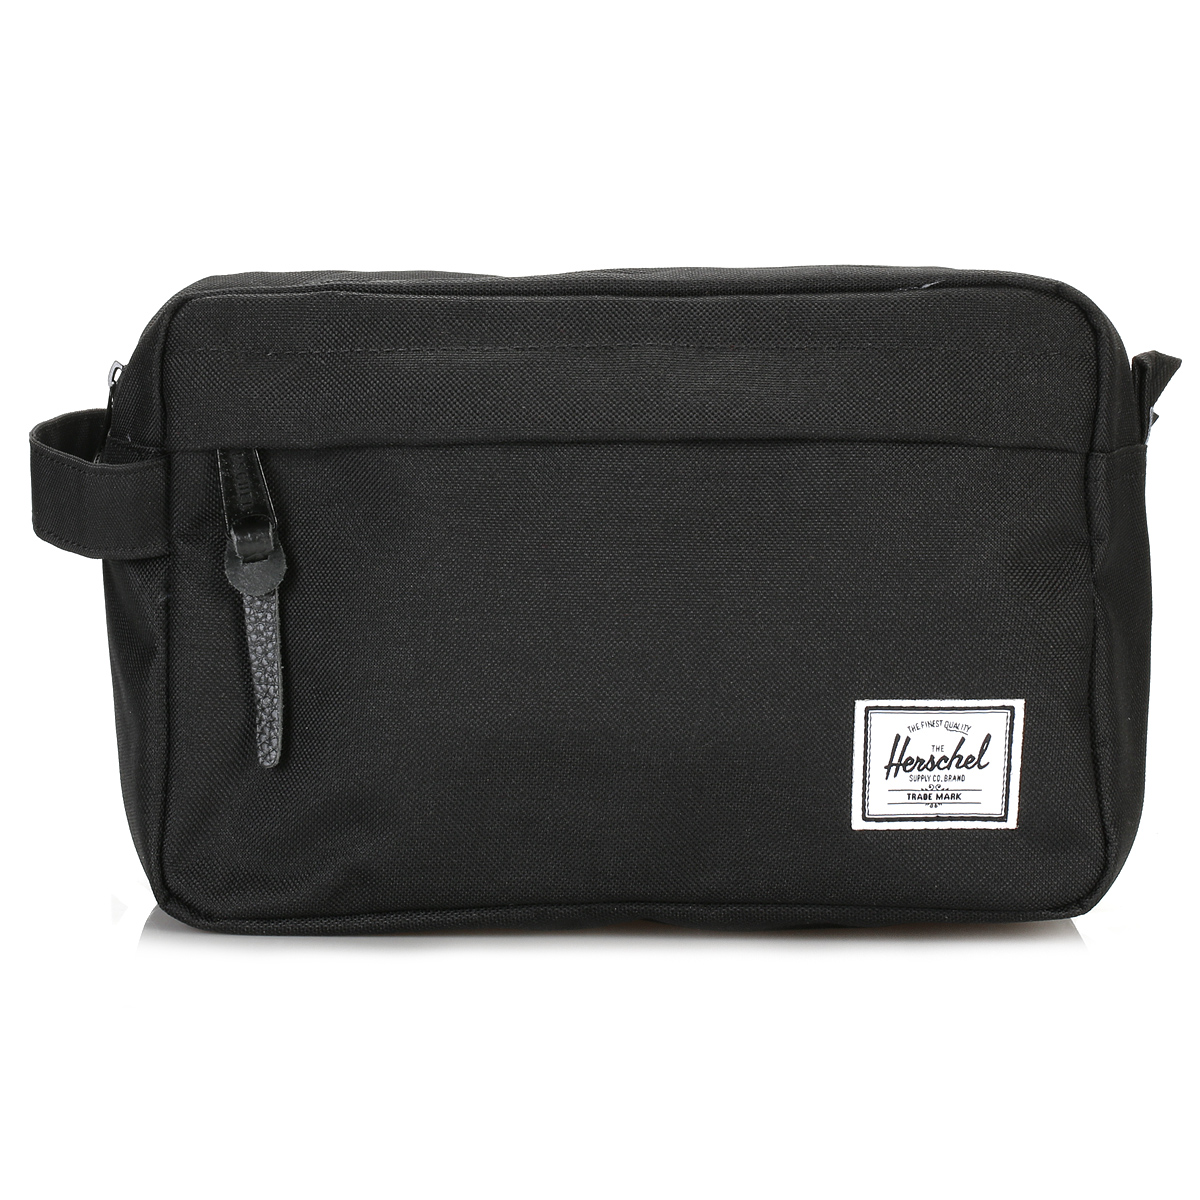 The Herschel Chapter Toiletry Bag Is Perfect For Carrying Your Essentials Featuring A Practical Internal Mesh Sleeve Extra Storage And Convenience